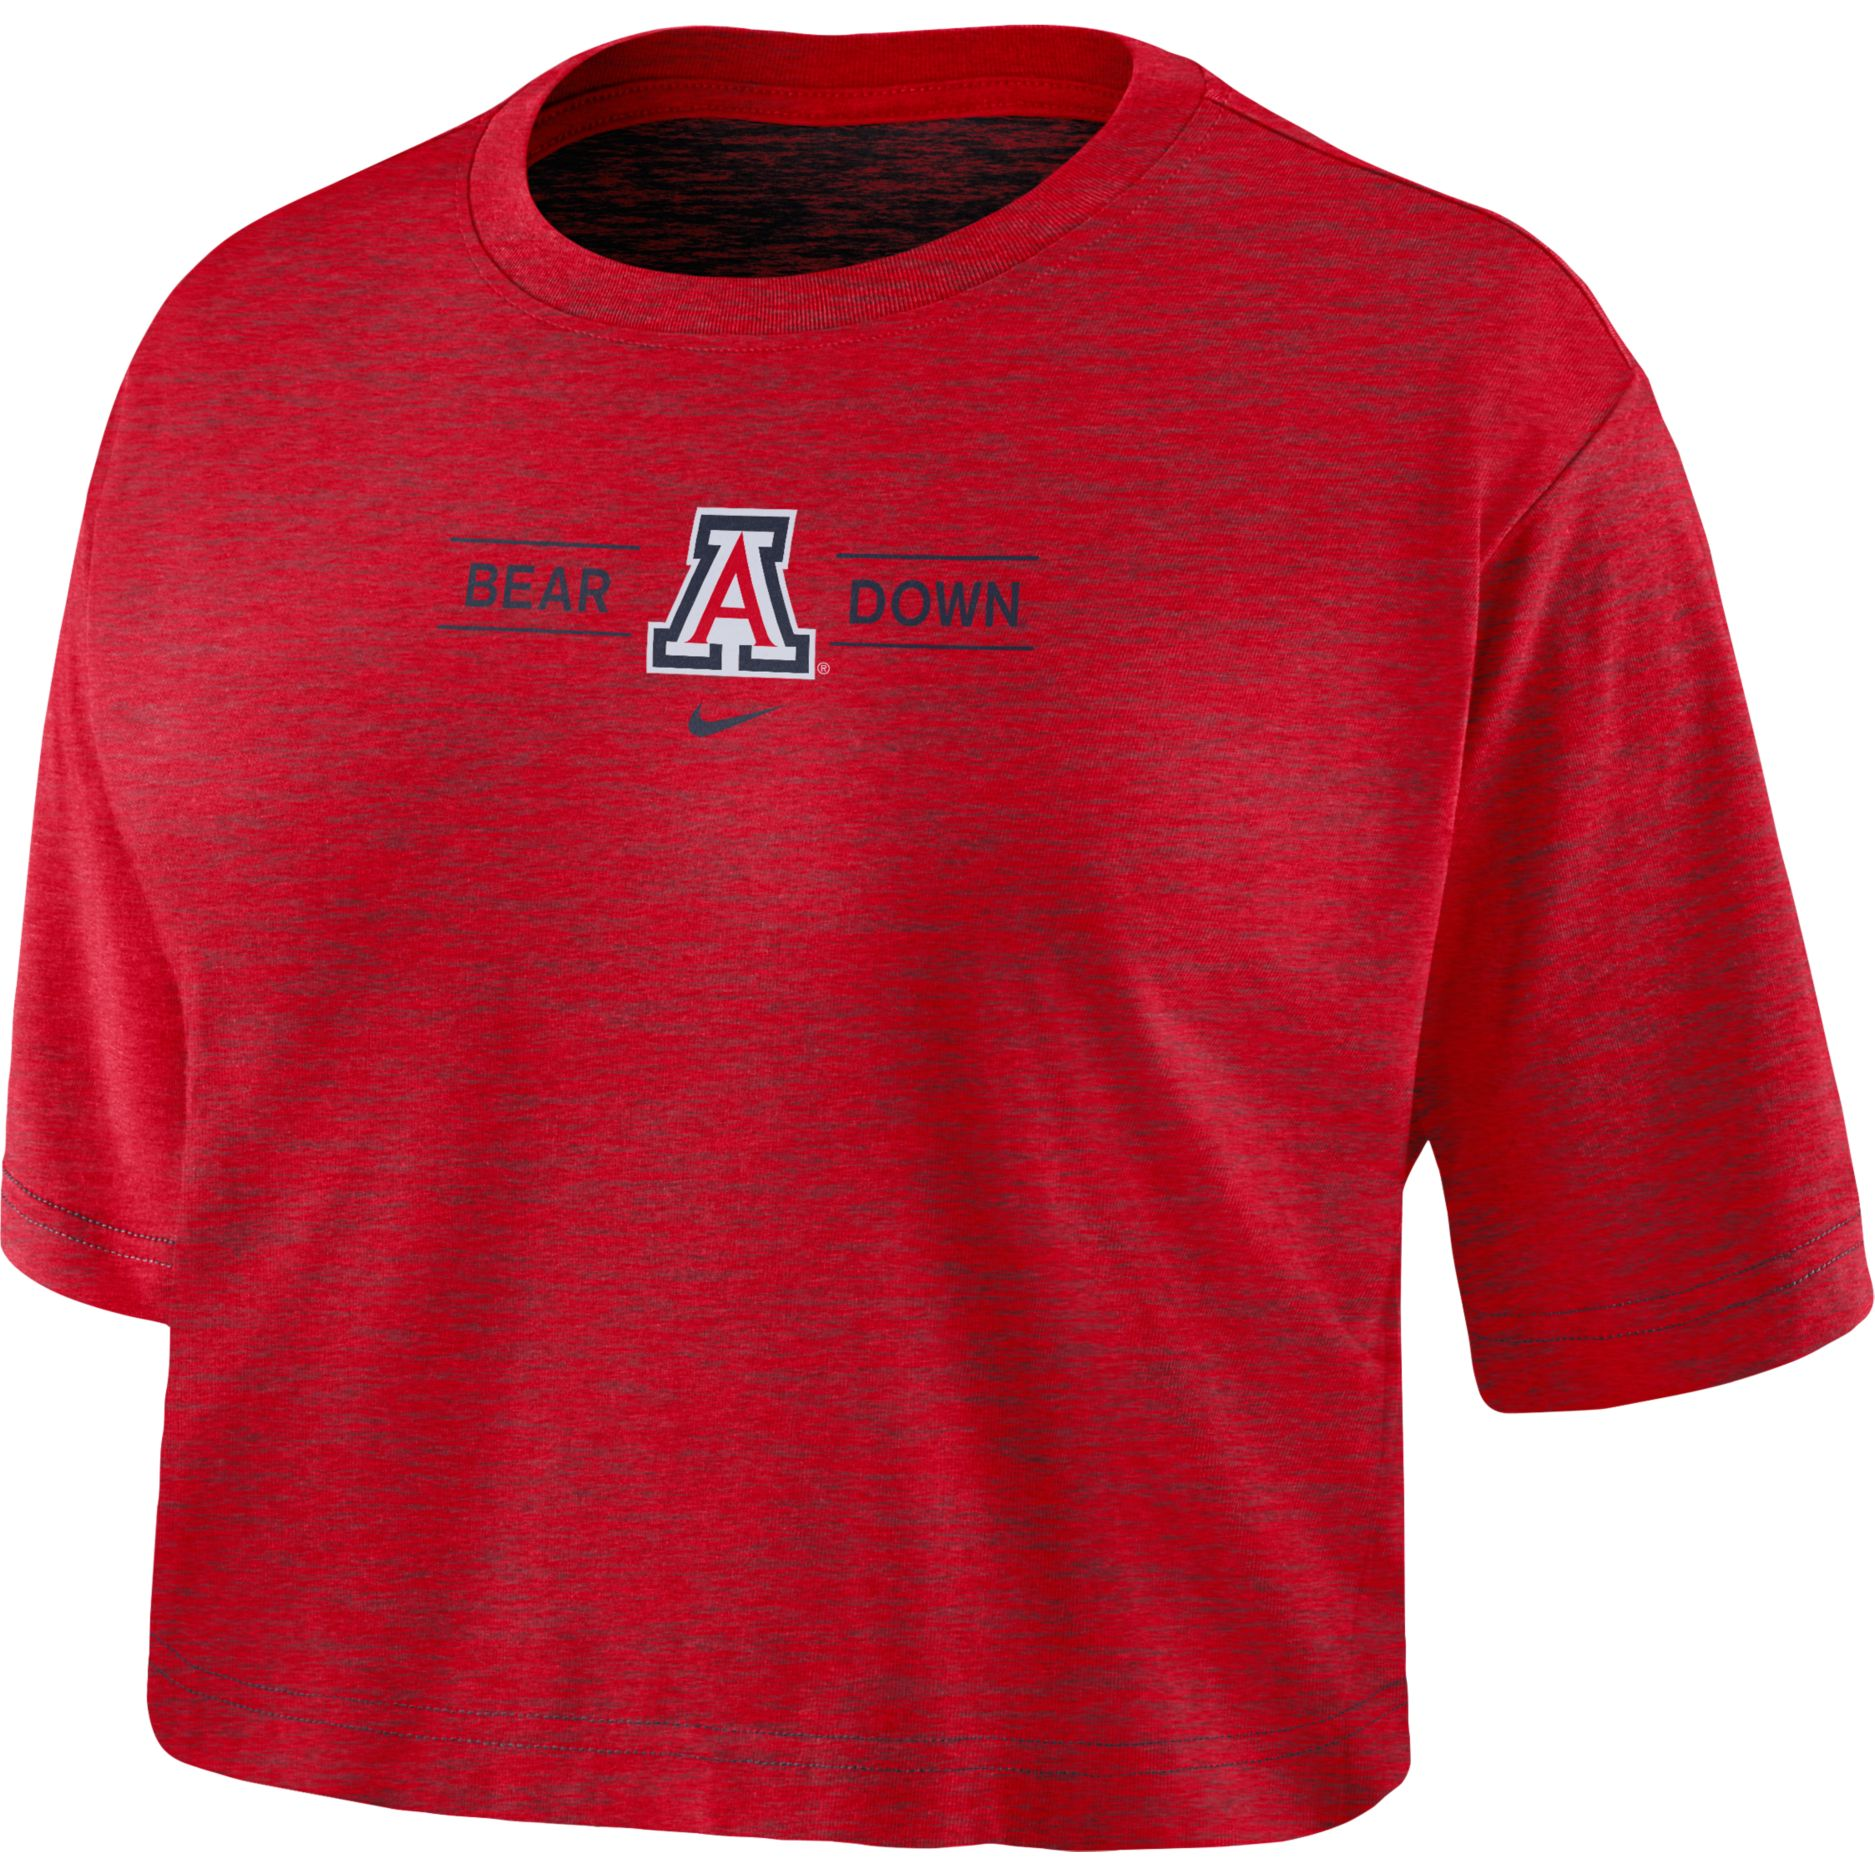 Arizona BEAR DOWN Slub Cropped Tee